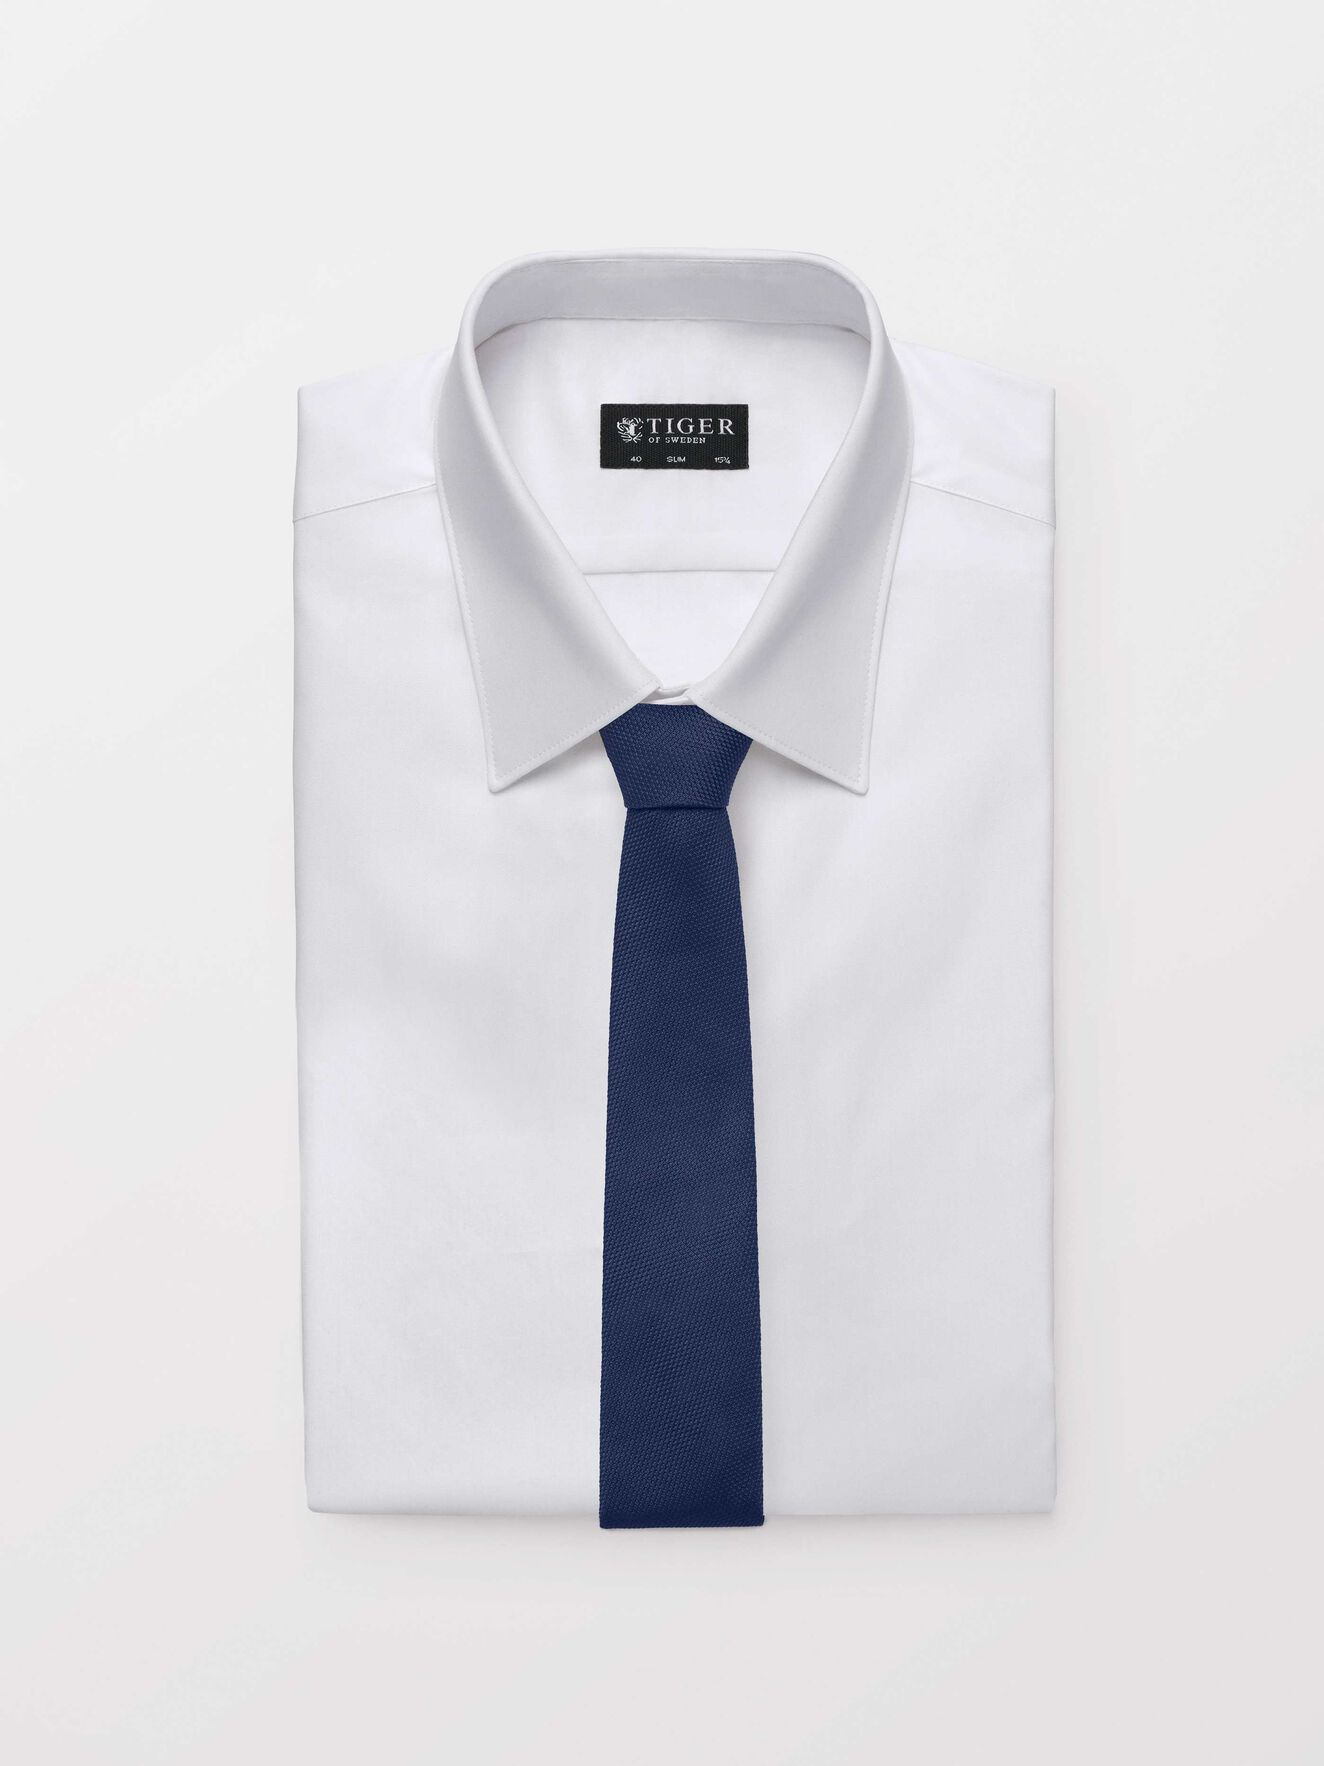 Terete Tie in Light Ink from Tiger of Sweden